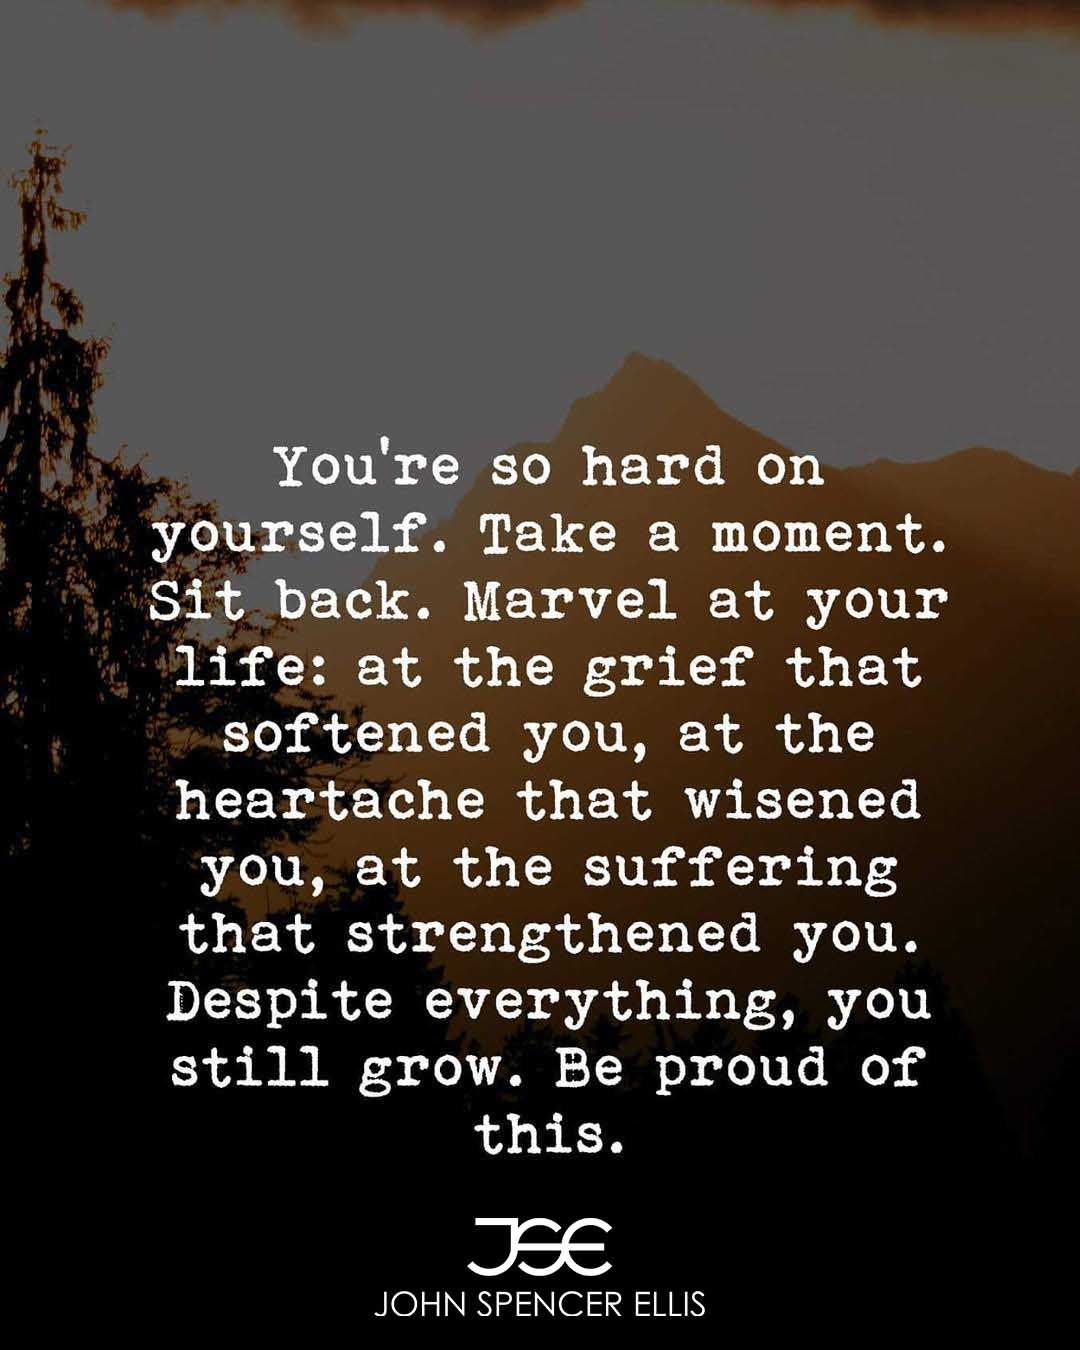 Encouraging Words For A Friend Going Through A Tough Time When Life Gets Tough Quotes Quotes About Bad Times Gett Tough Quote Daily Quotes Hard Times Quotes